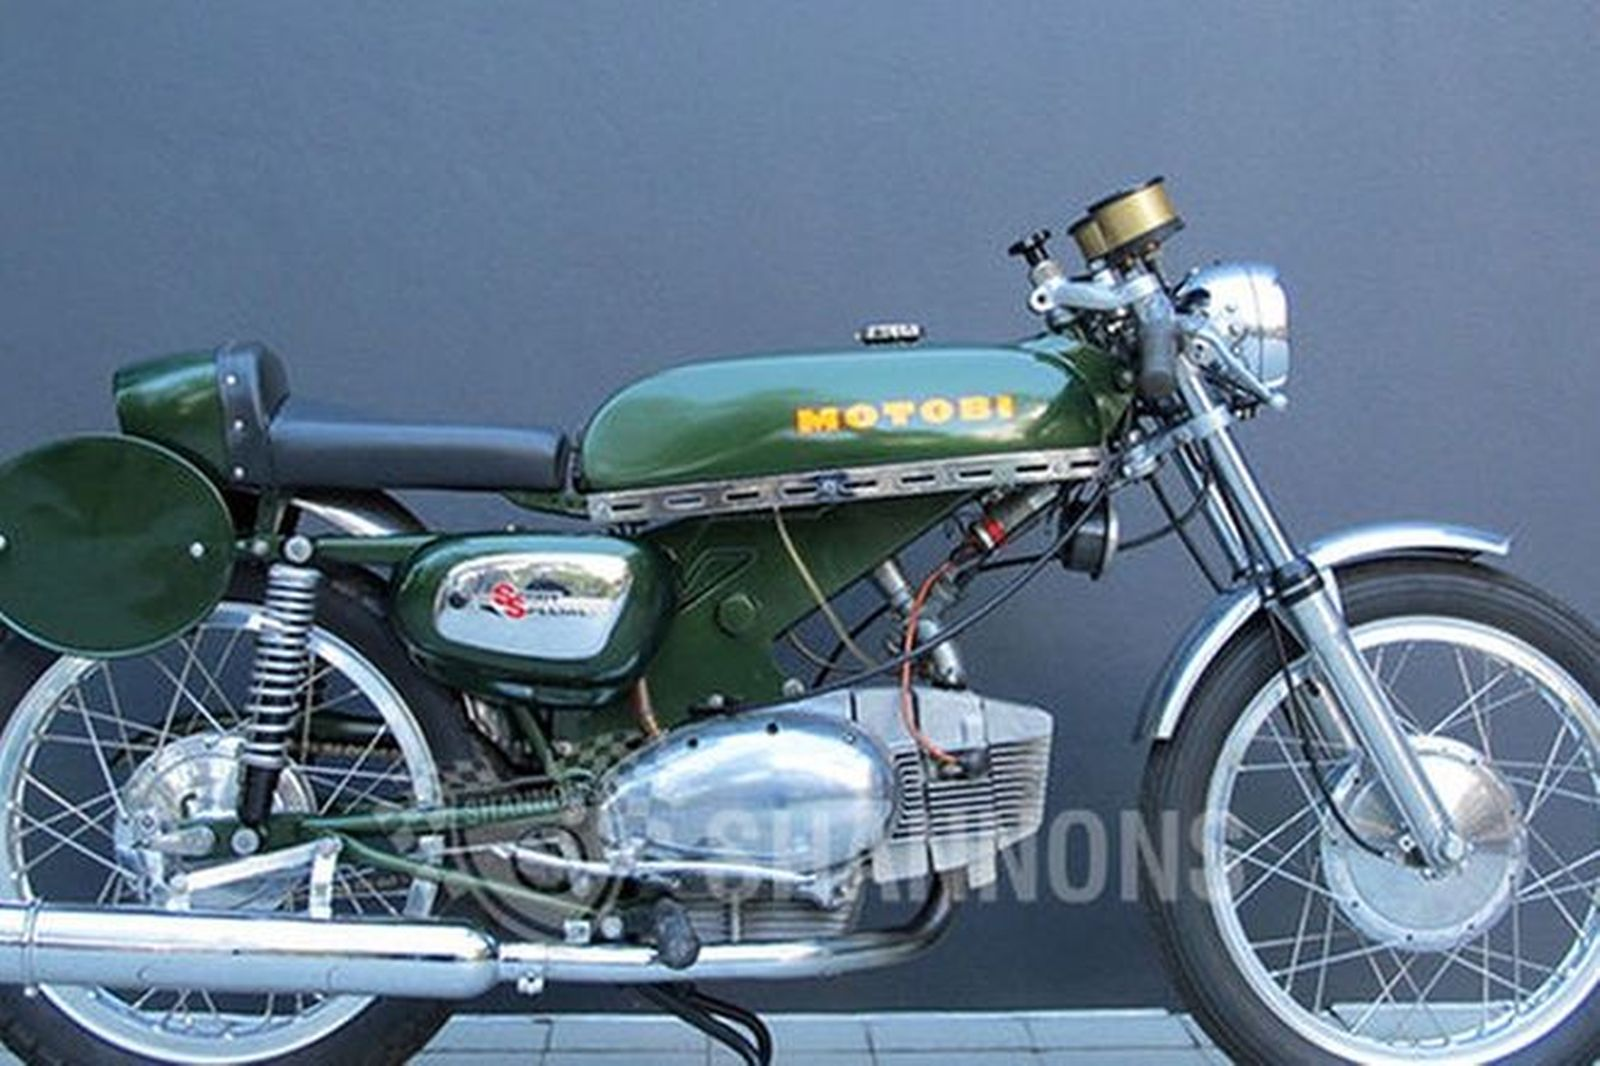 Sold: Benelli-Motobi Sports Special 250cc Motorcycle